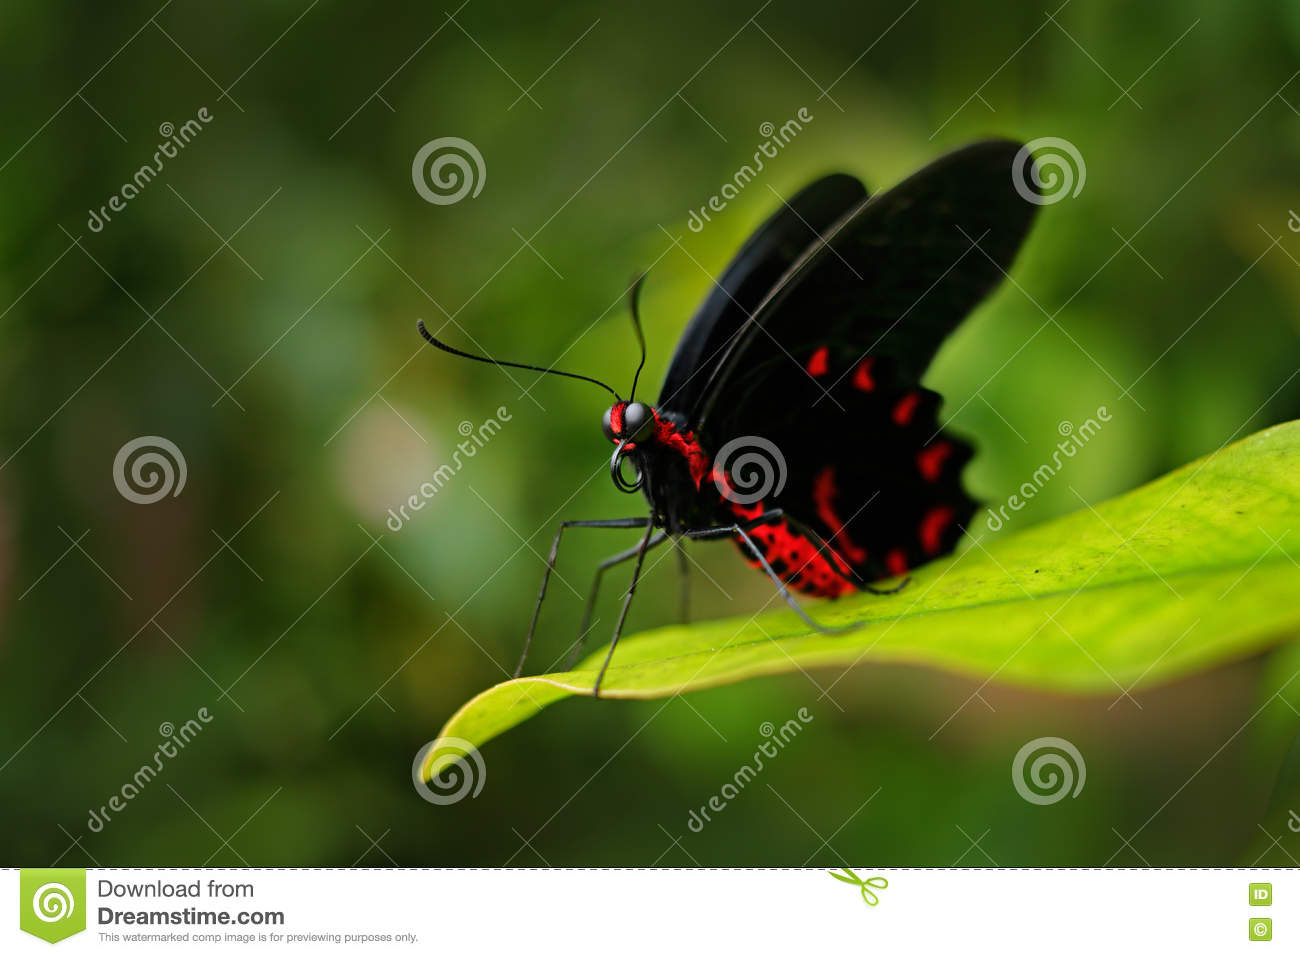 Beautiful black and red poison butterfly, Antrophaneura semperi, in the nature green forest habitat, wildlife, Indonesia. Insect